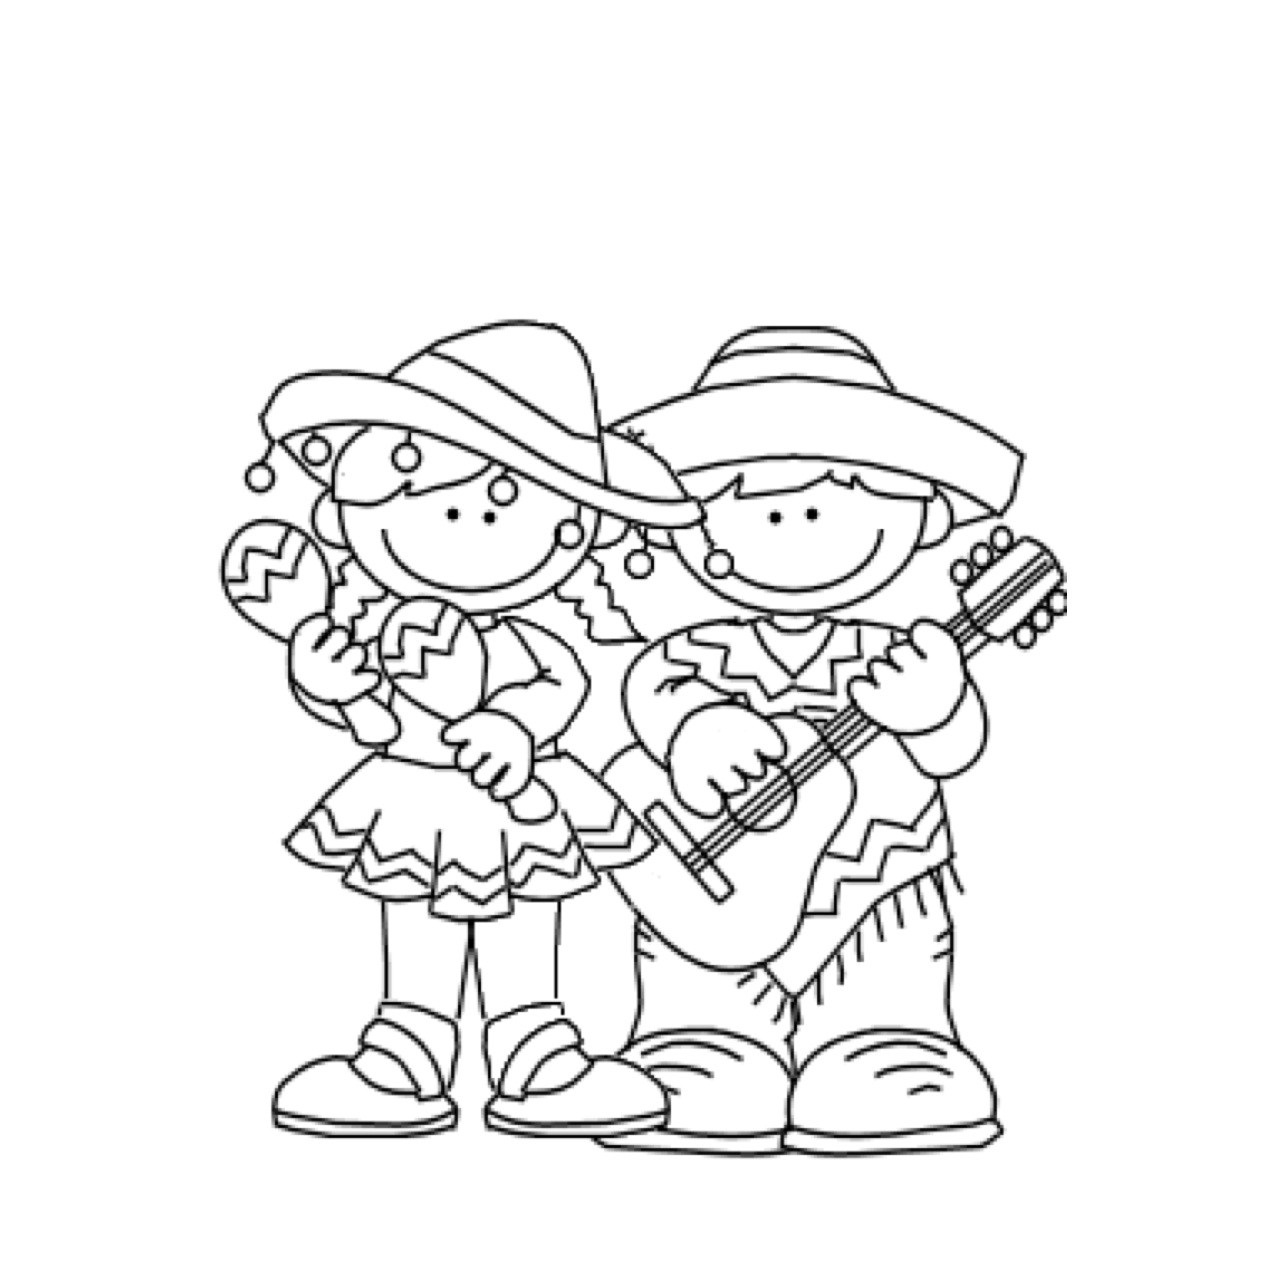 picture relating to Cinco De Mayo Coloring Pages Printable named Free of charge Printable Cinco De Mayo Coloring Internet pages For Children - Least difficult